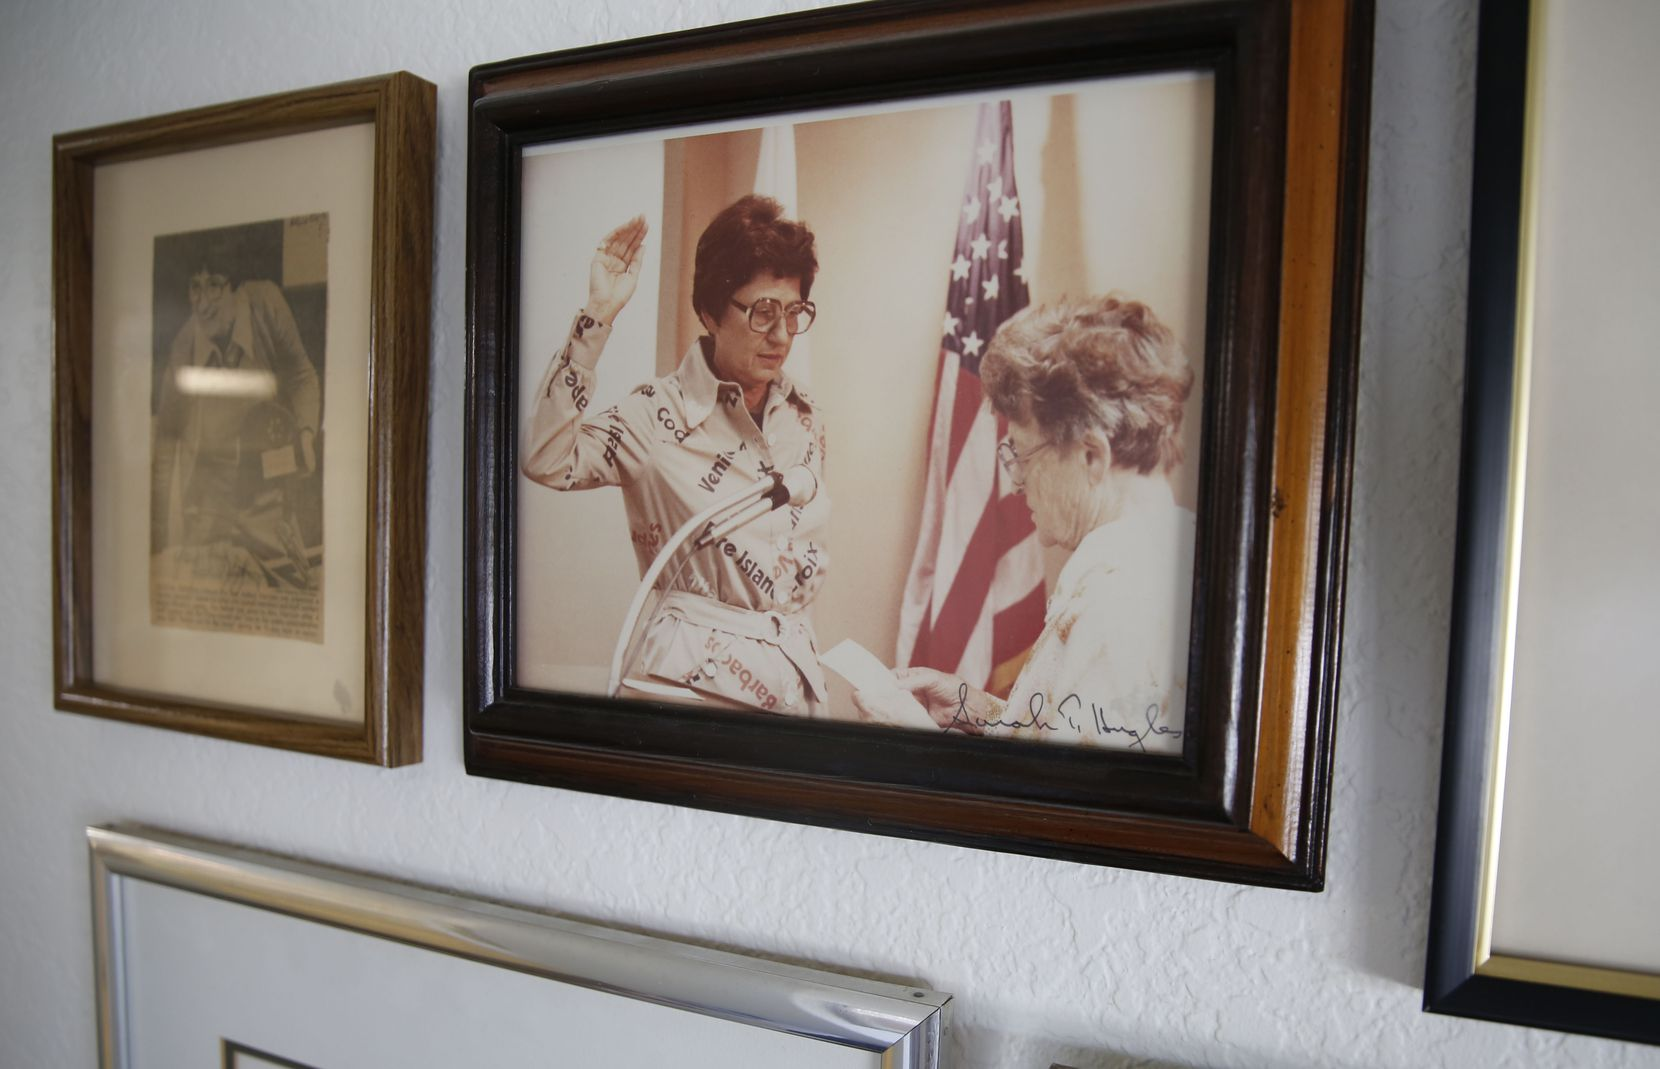 Adlene Harrison (left), Dallas' first female mayor, is sworn in as EPA regional administrator by U.S. District Judge Sarah T. Hughes in a photo that hangs on the wall of Harrison's home in Dallas.